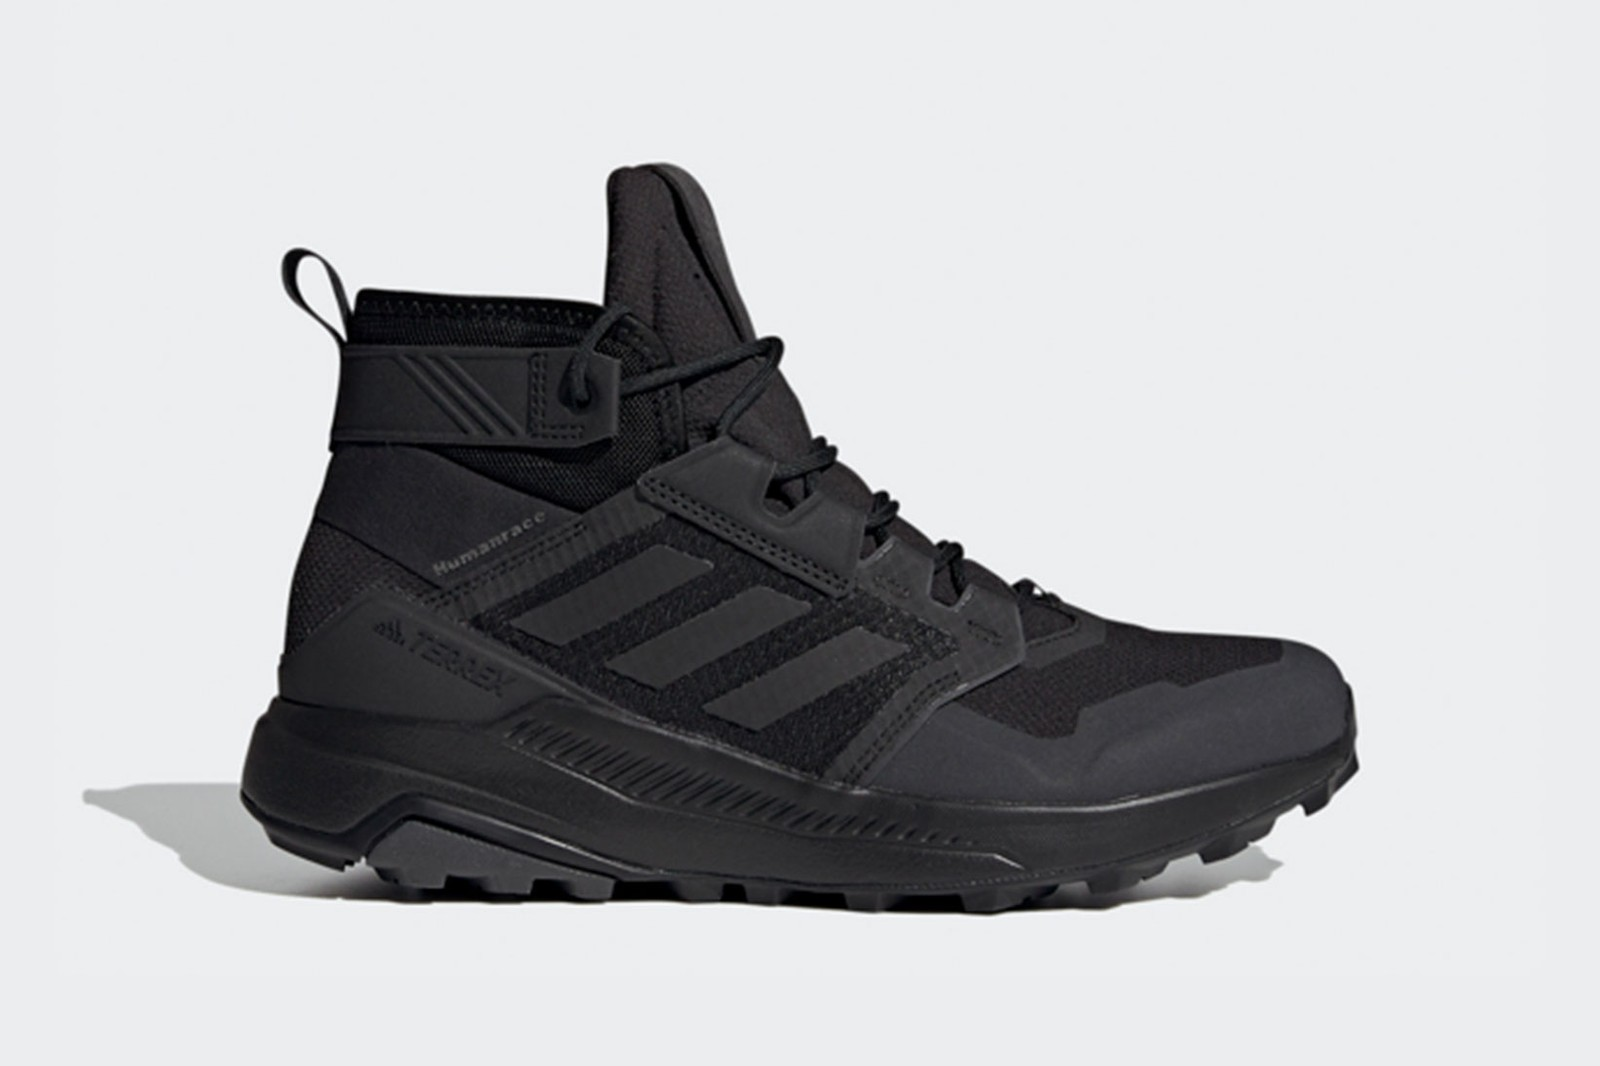 pharrell williams adidas pw triple black collaboration hu nmd terrex freehiker sneakers boots release where to buy